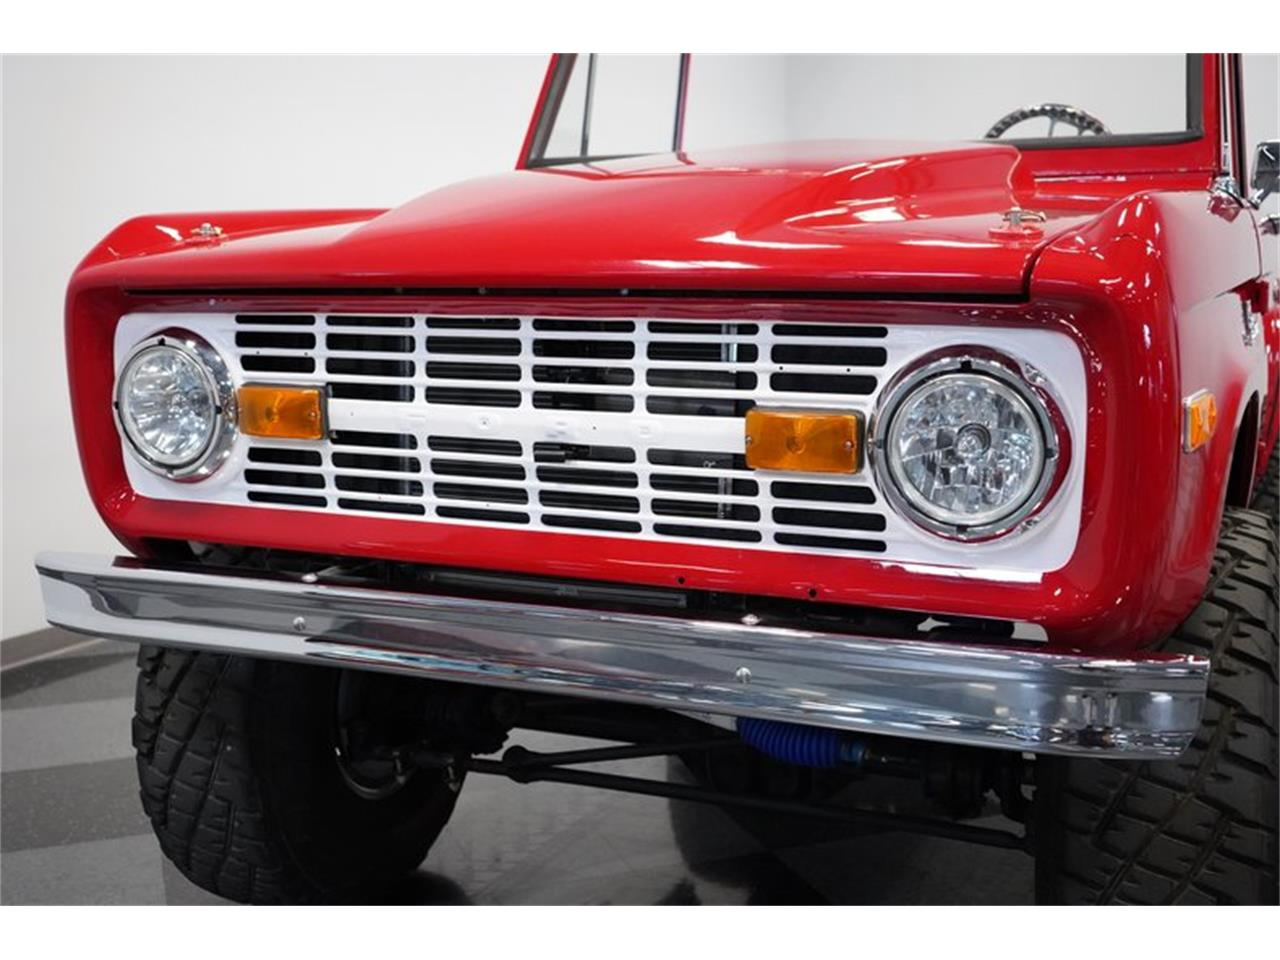 Large Picture of '75 Bronco located in Arizona Offered by Streetside Classics - Phoenix - Q516